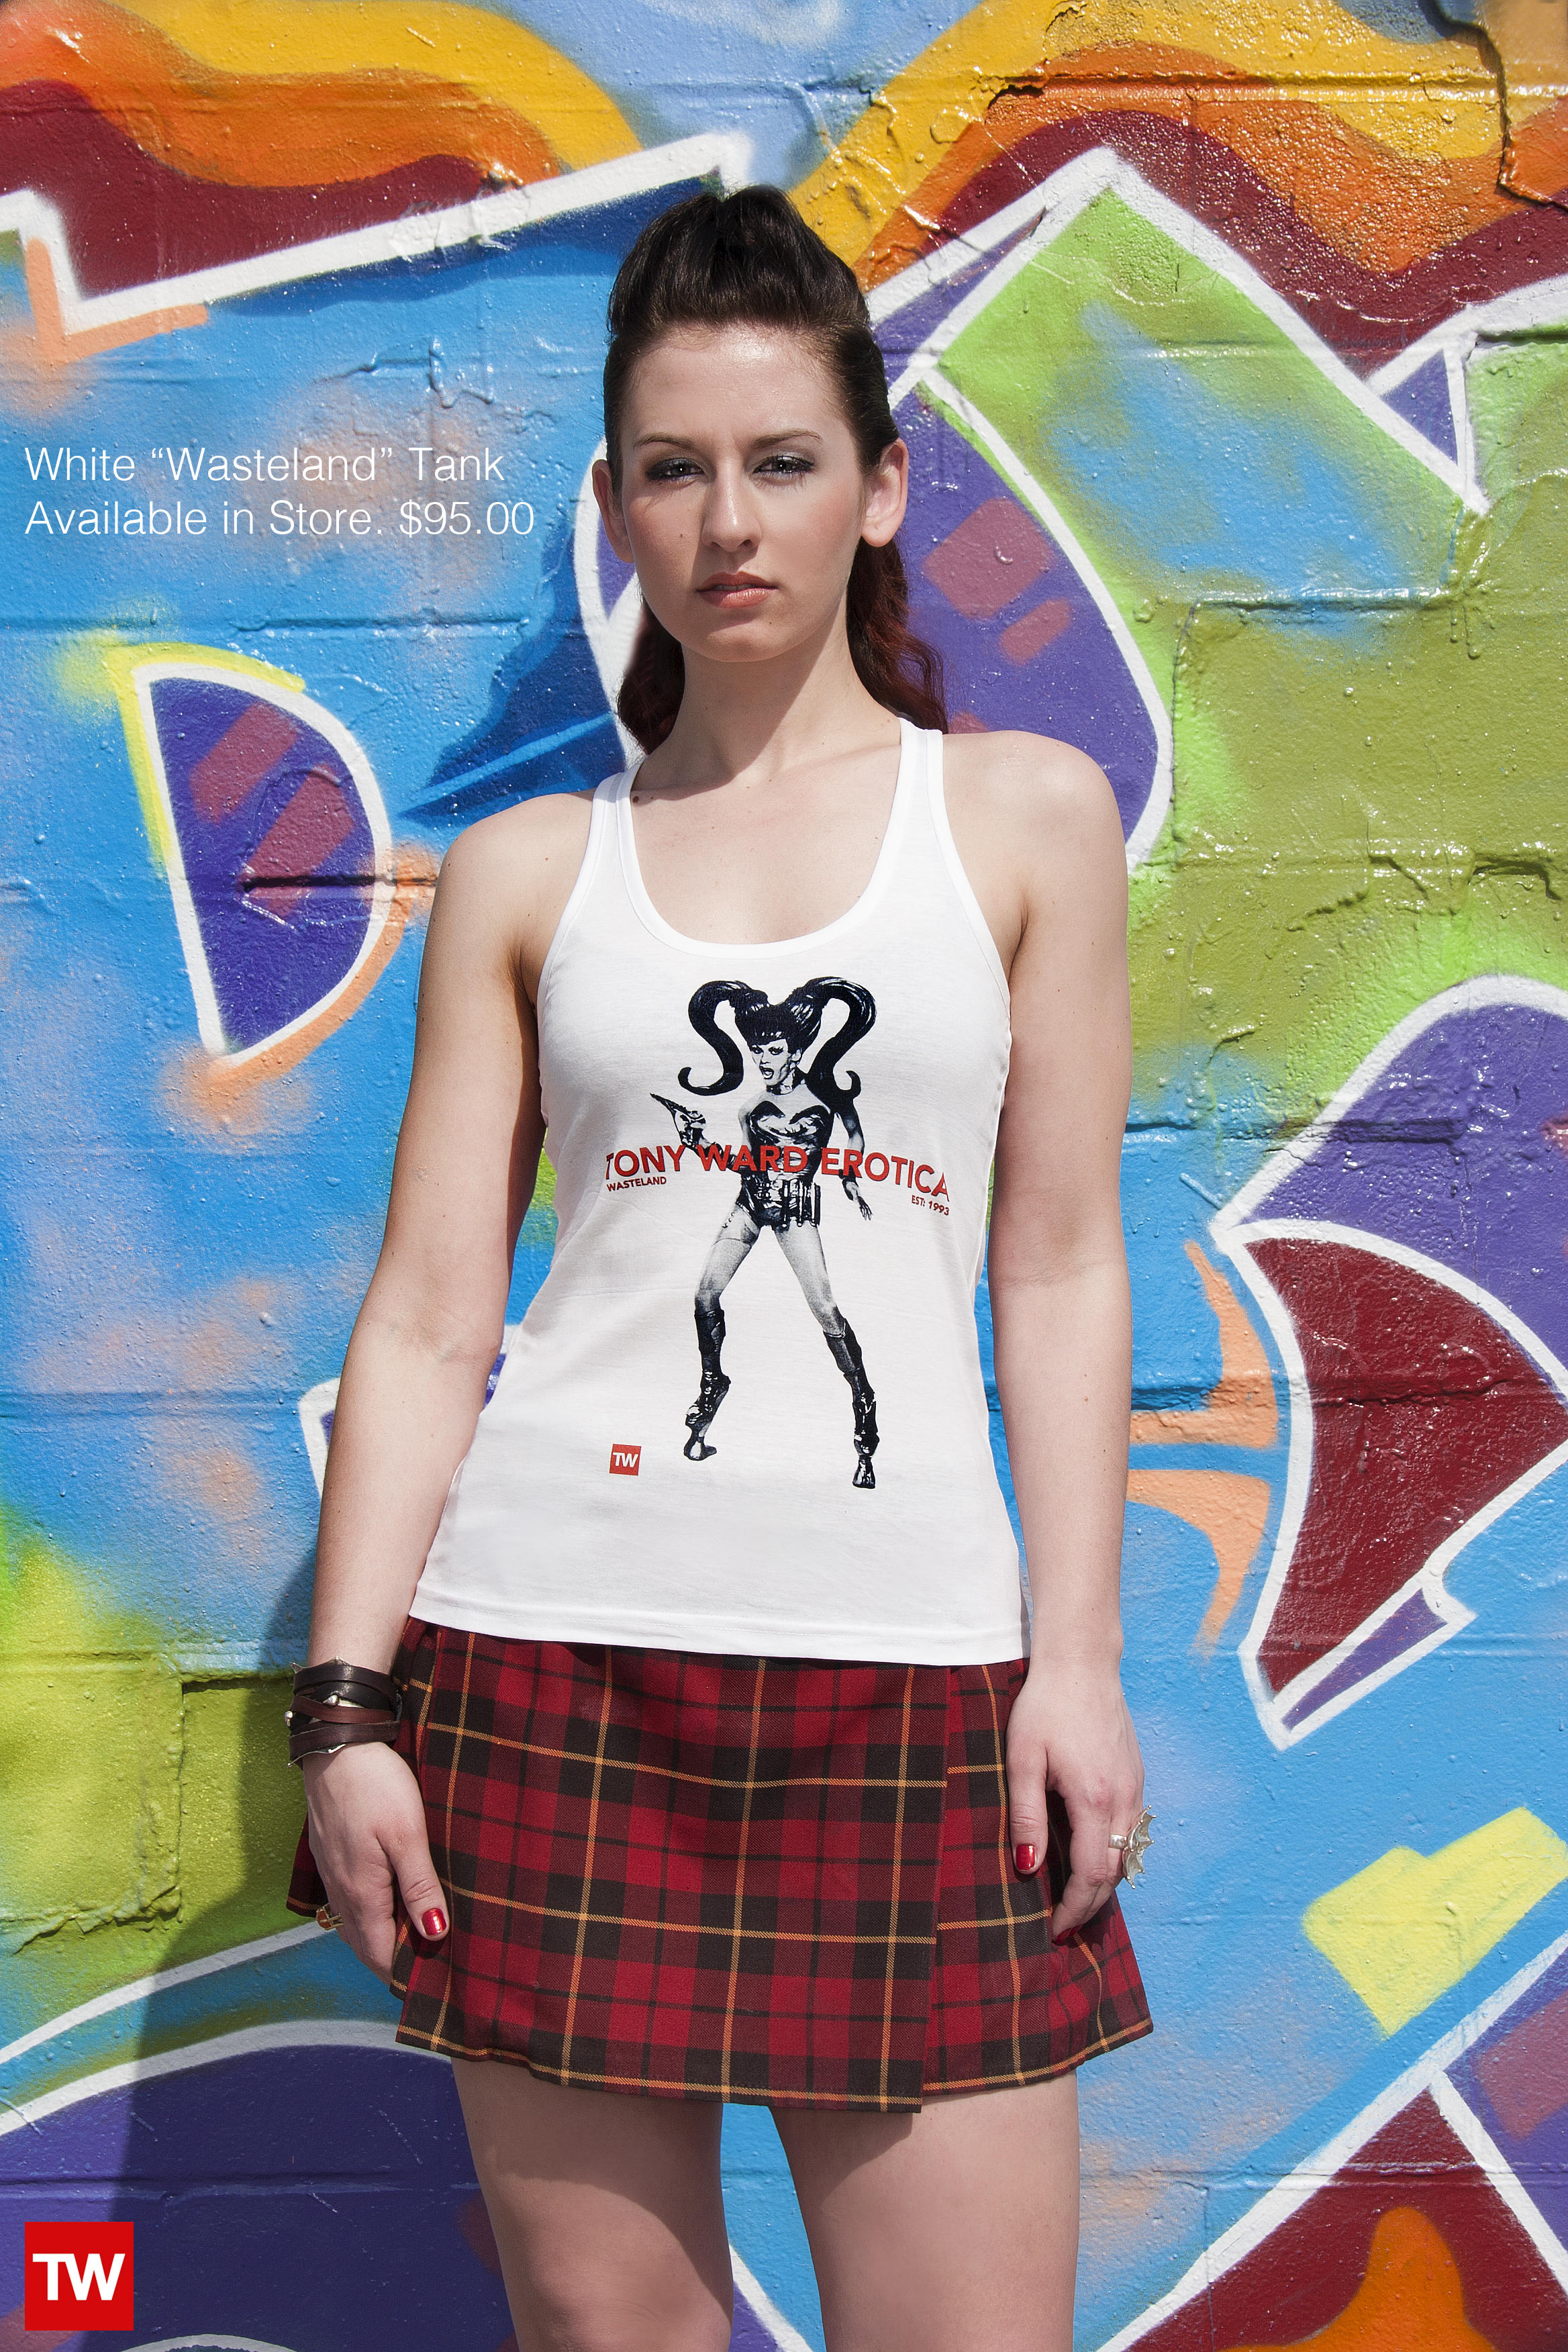 Tony_Ward_Studio_e_commerce_store_t-shirts_white_Wasteland_tank_sale_model_Julia